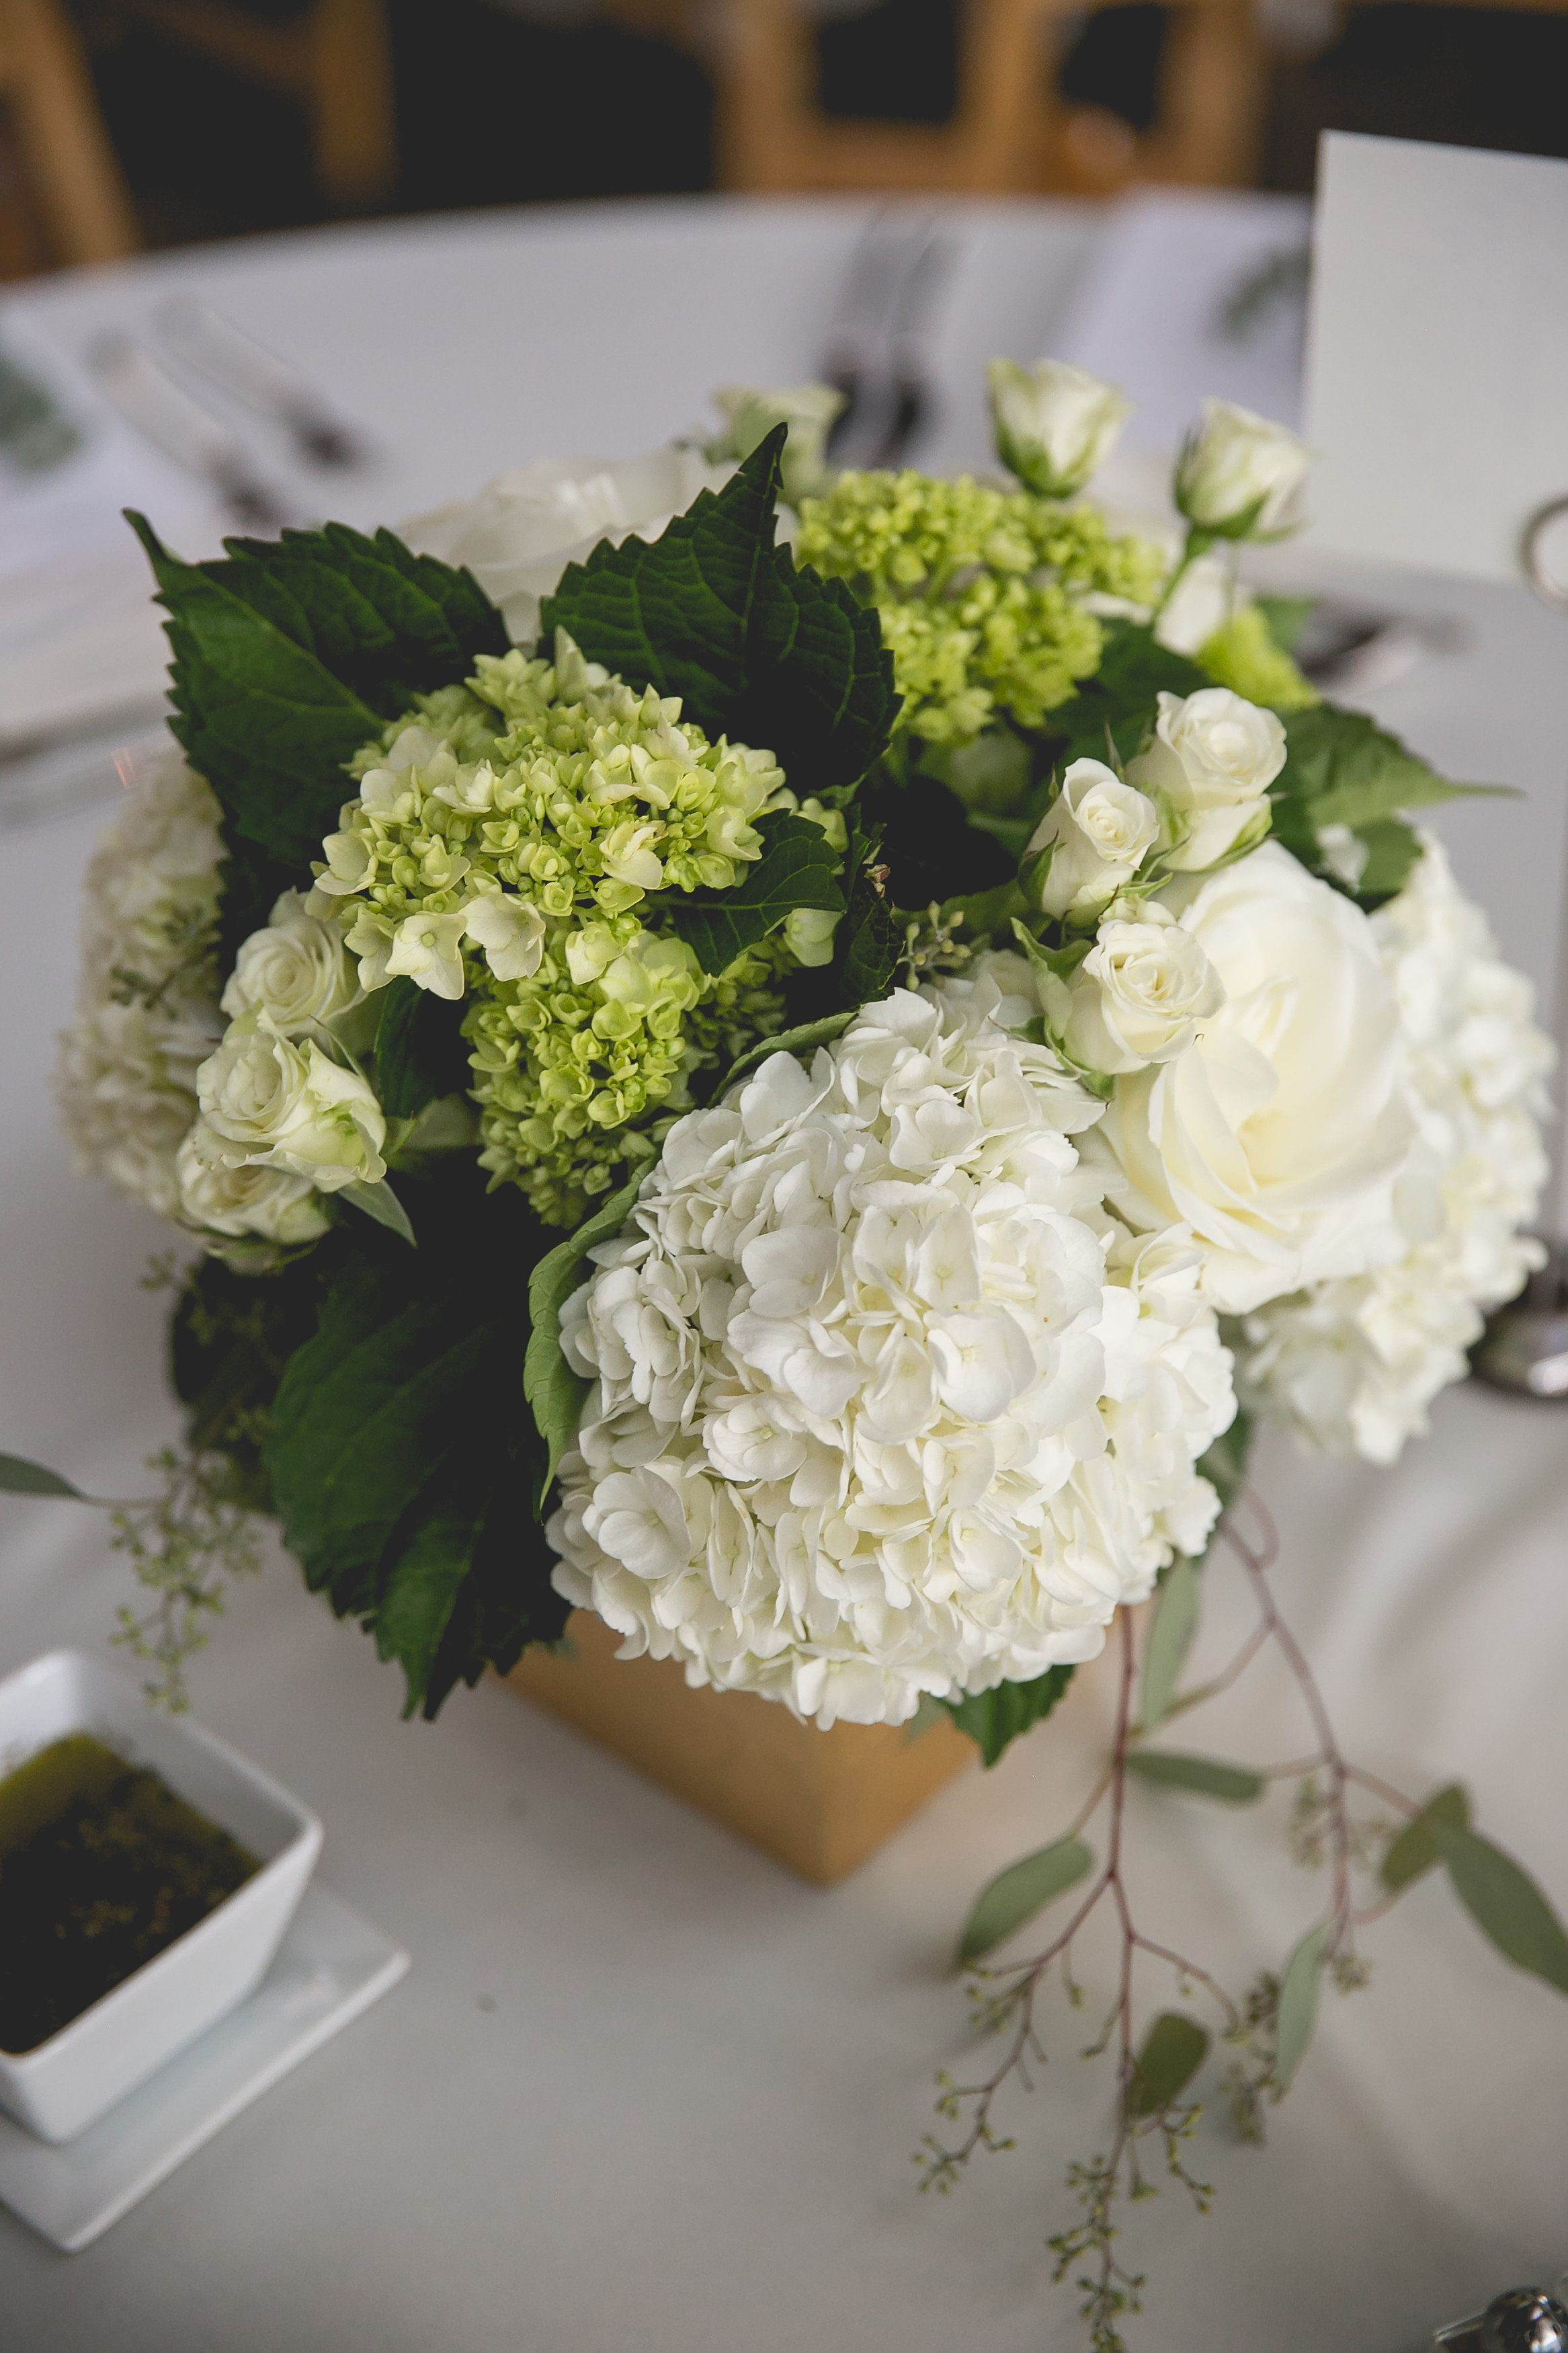 Green And White Hydrangea With Seeded Eucalyptus And Spray Rose